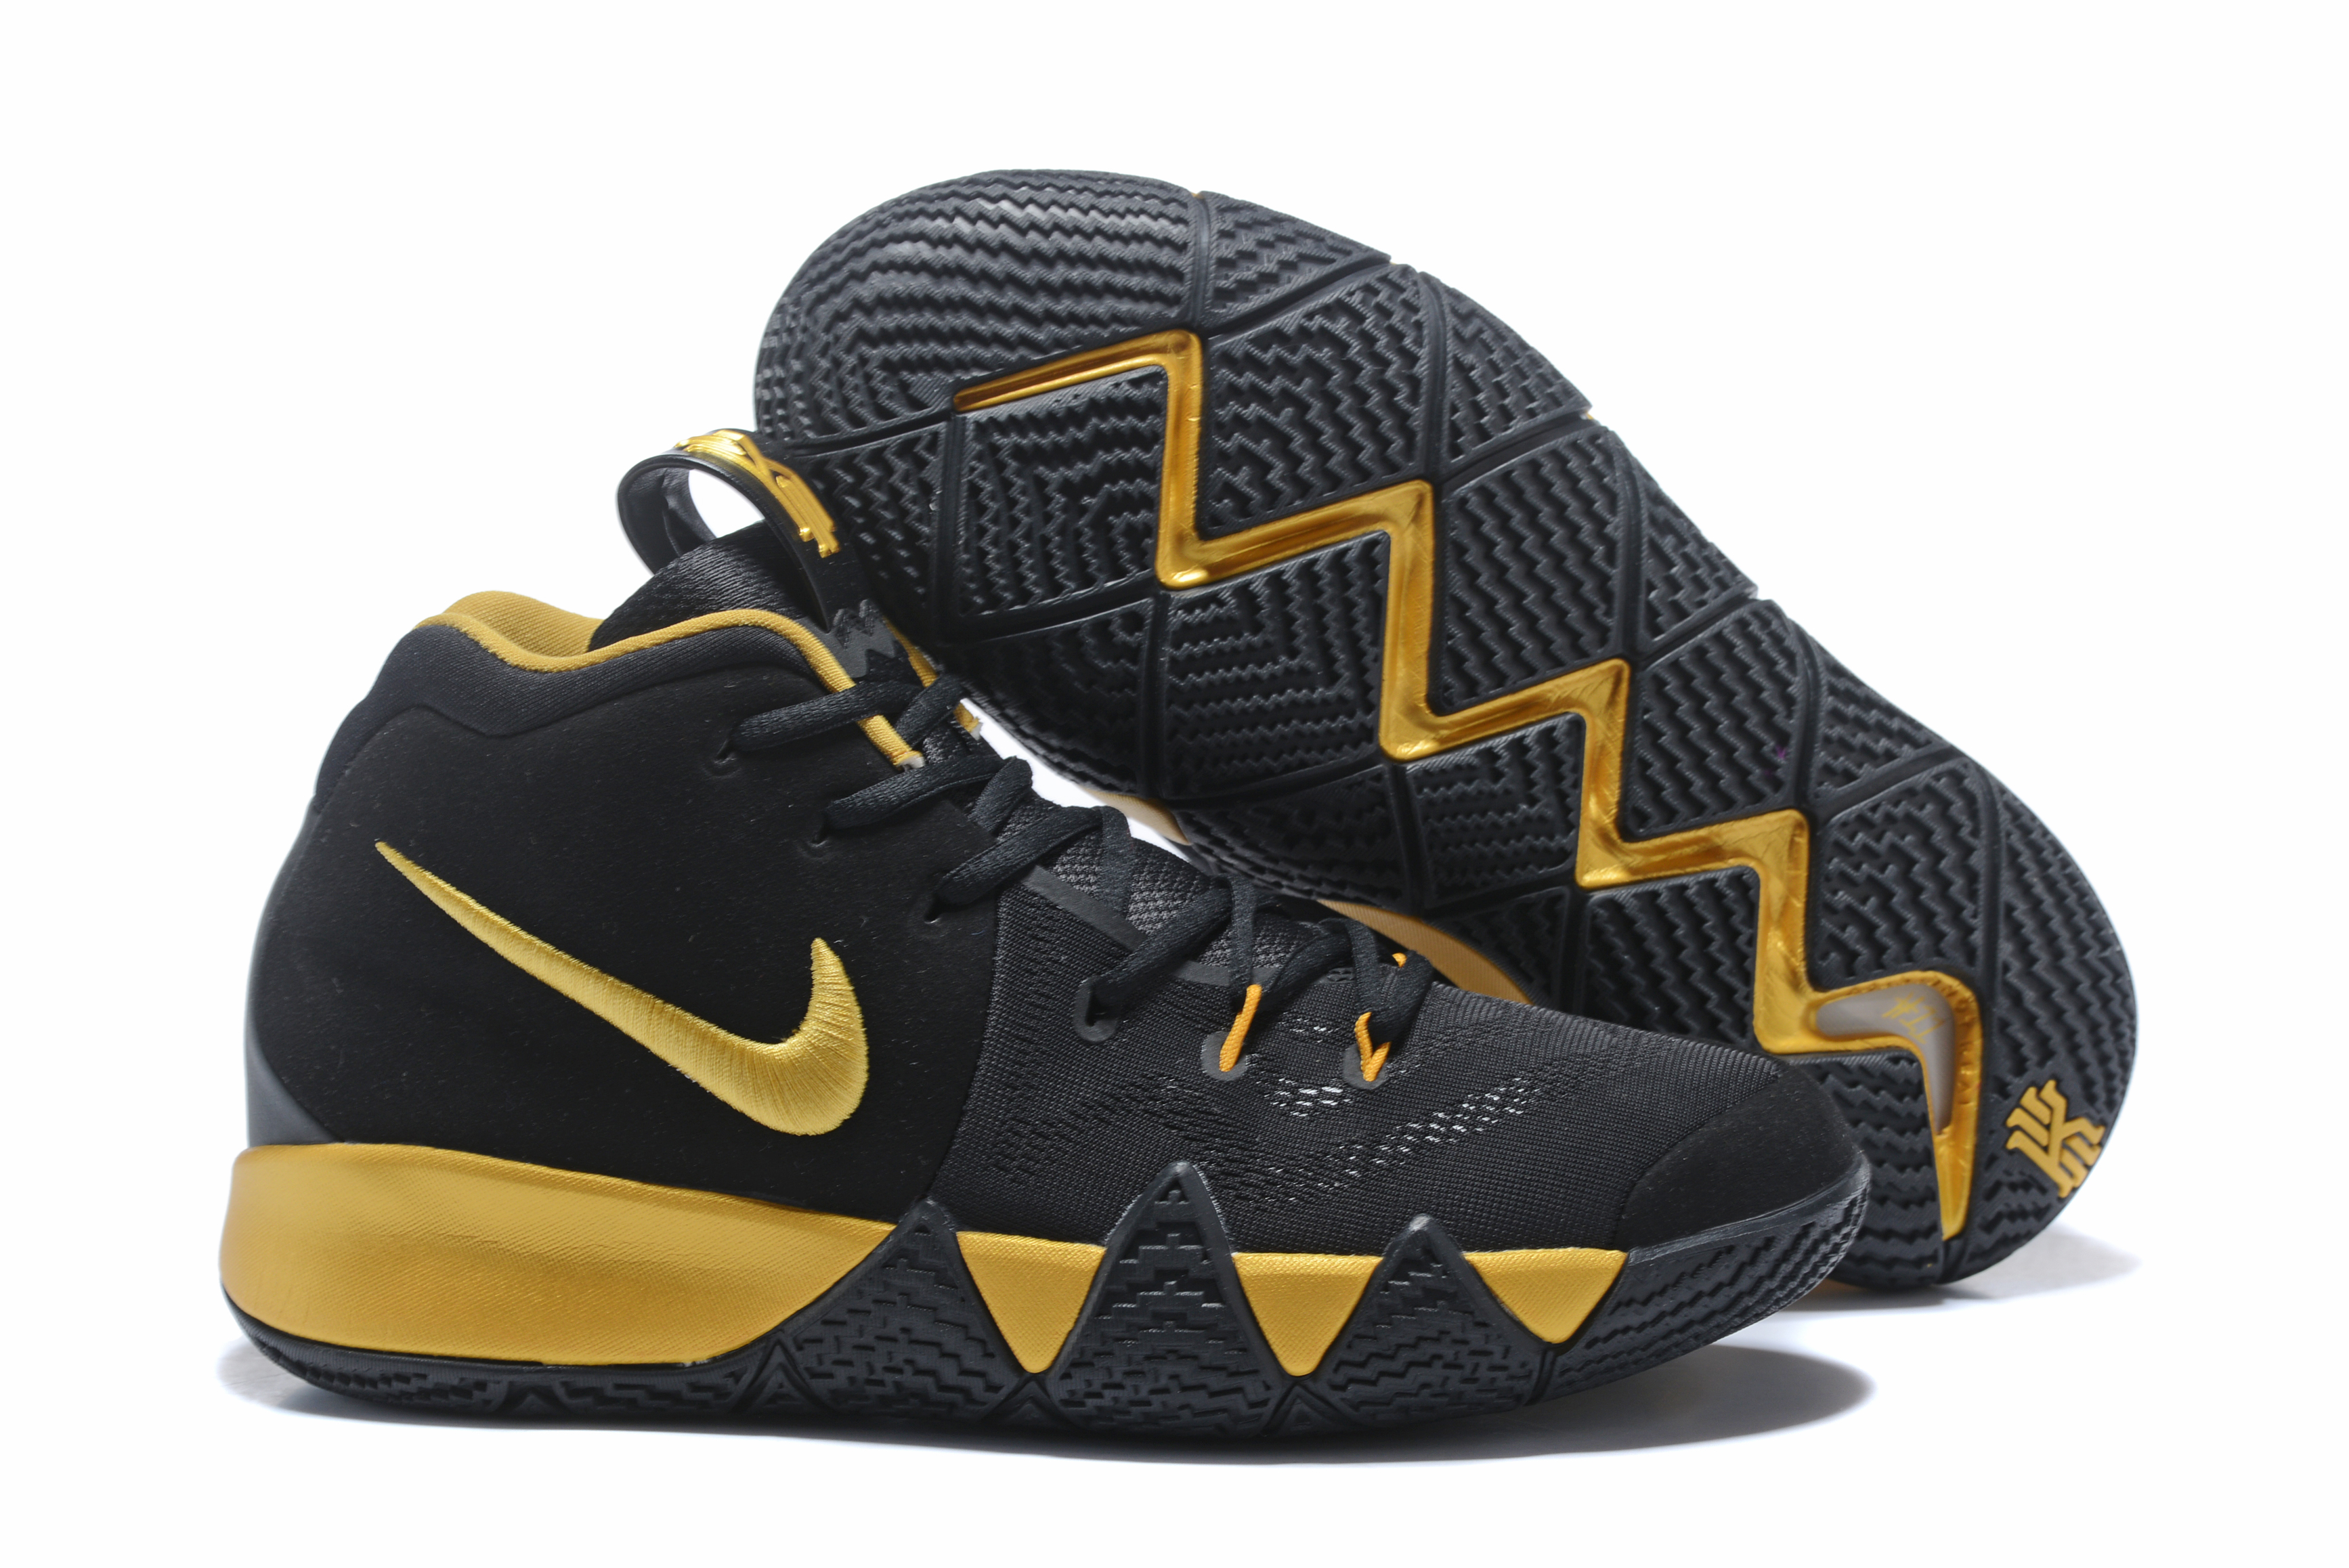 Nike Kyrie 4 Black Gloden Shoes